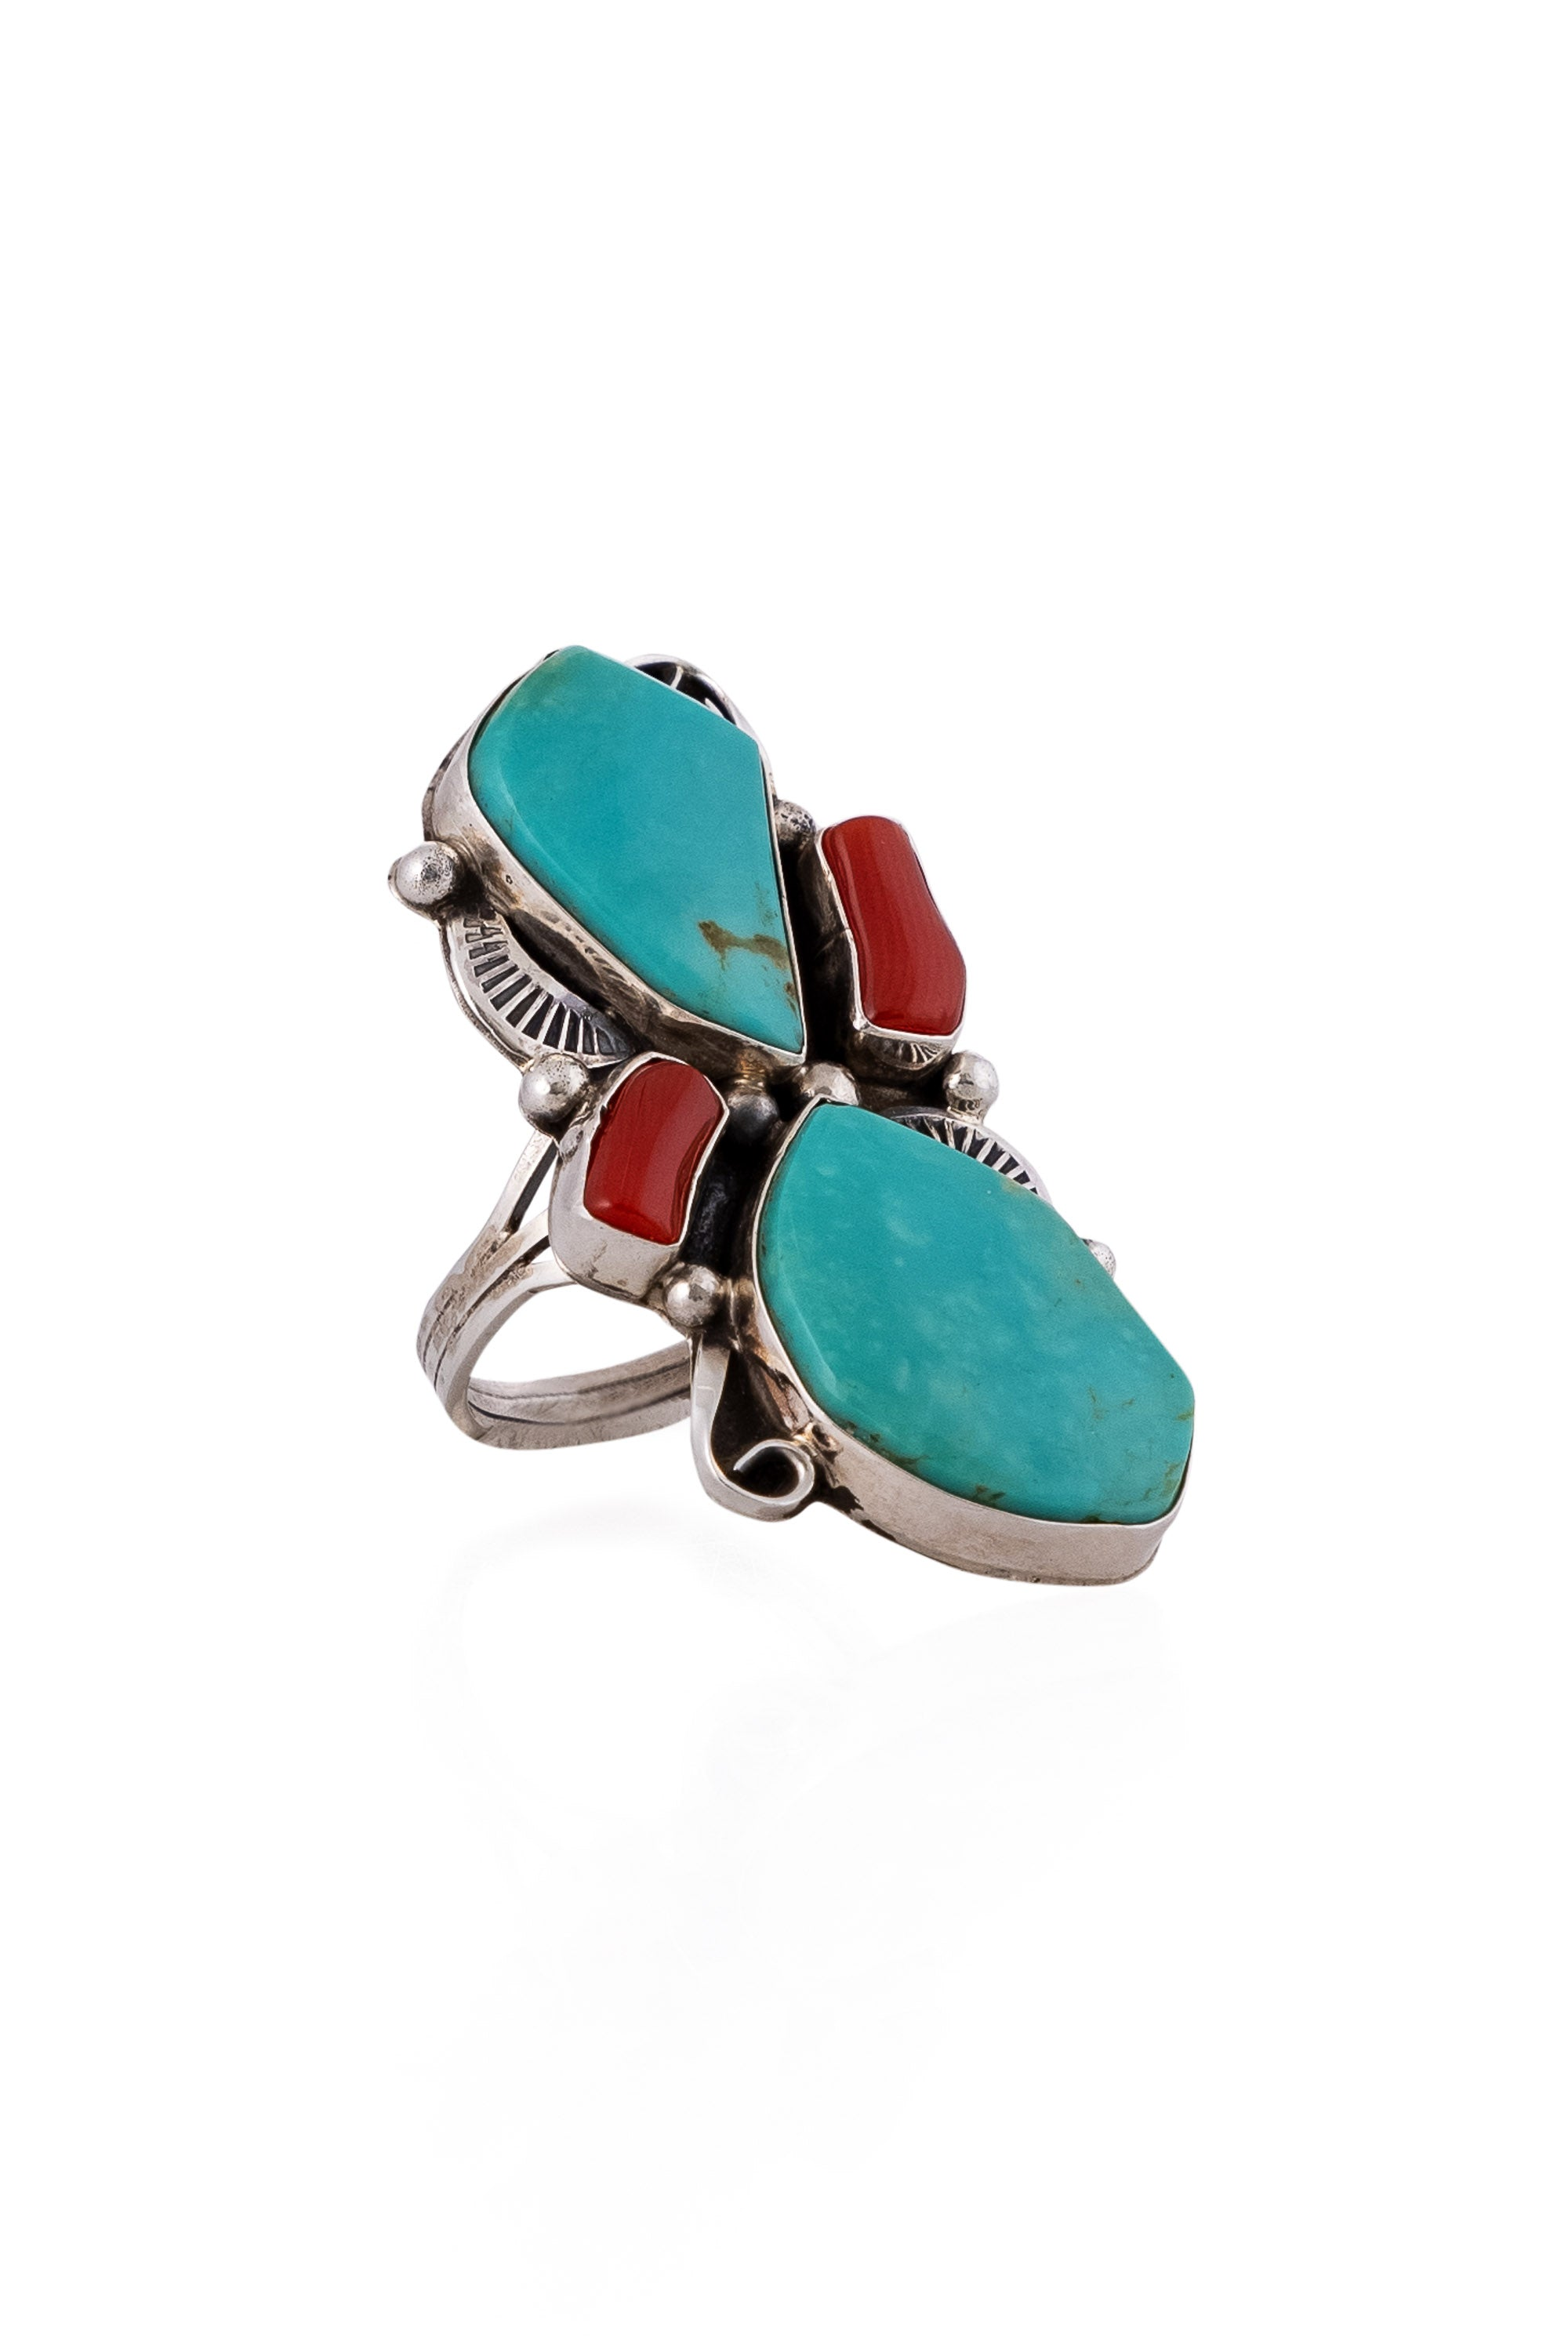 Ring, Turquoise & Coral, Hallmark, 656